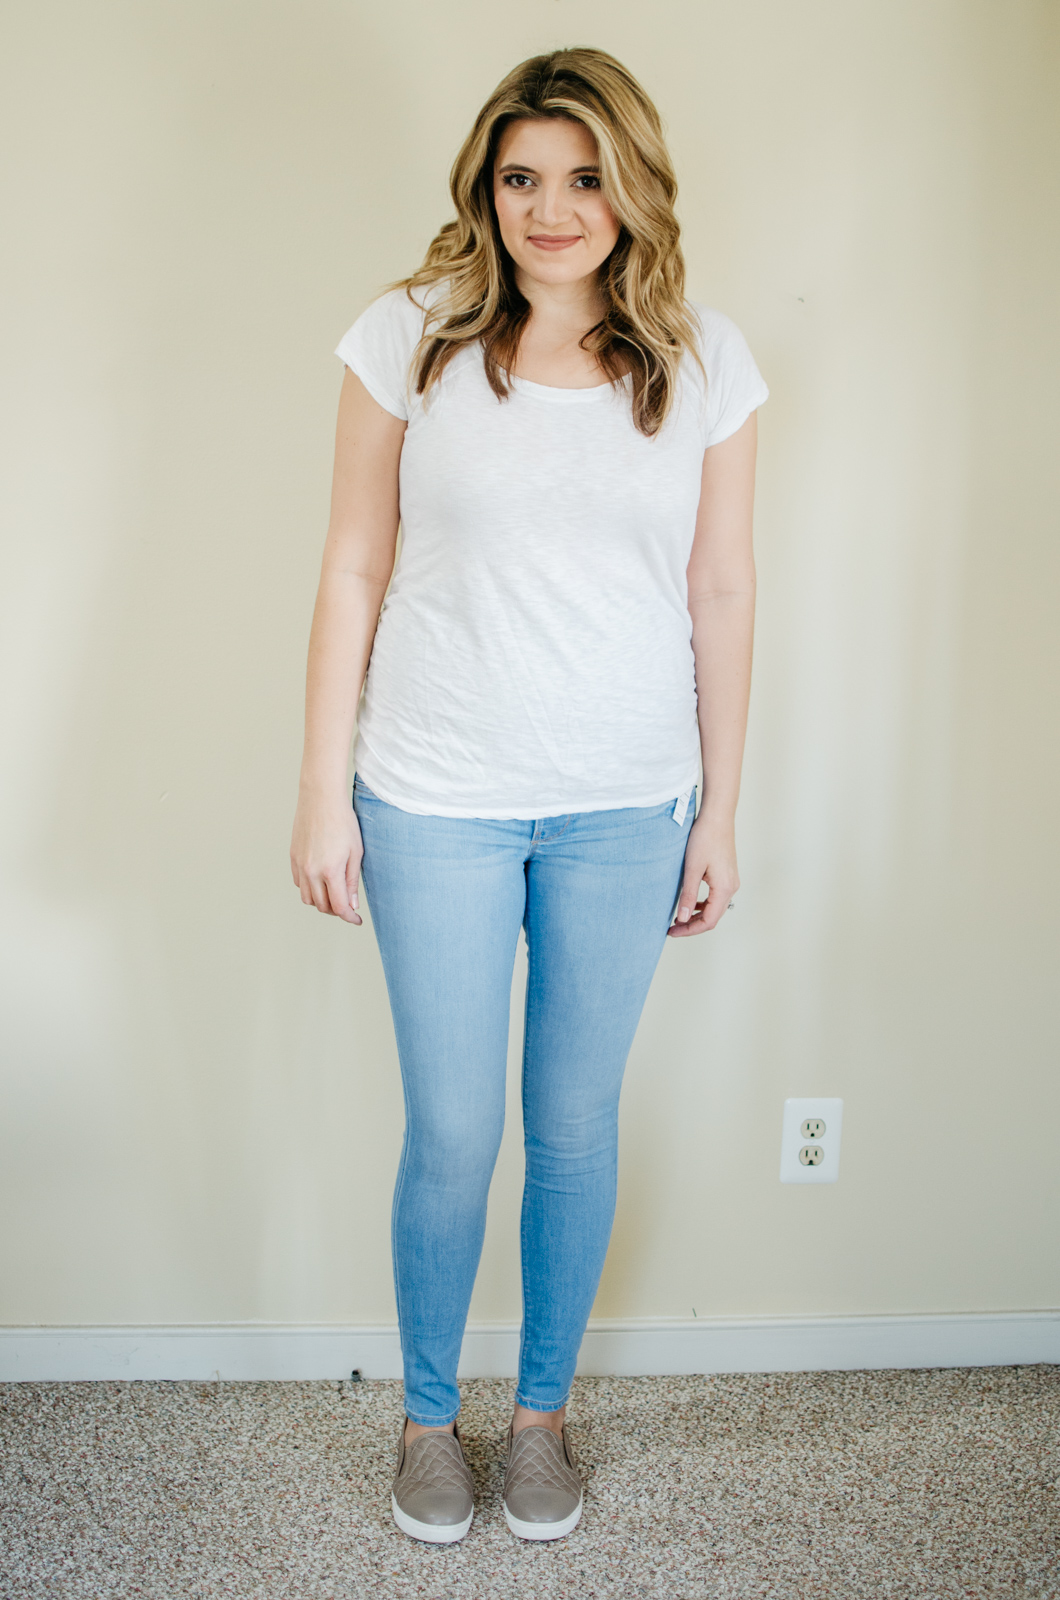 Old Navy Maternity Jeans Review | See reviews of over 15 maternity jeans brands by clicking through to this post! | bylaurenm.com